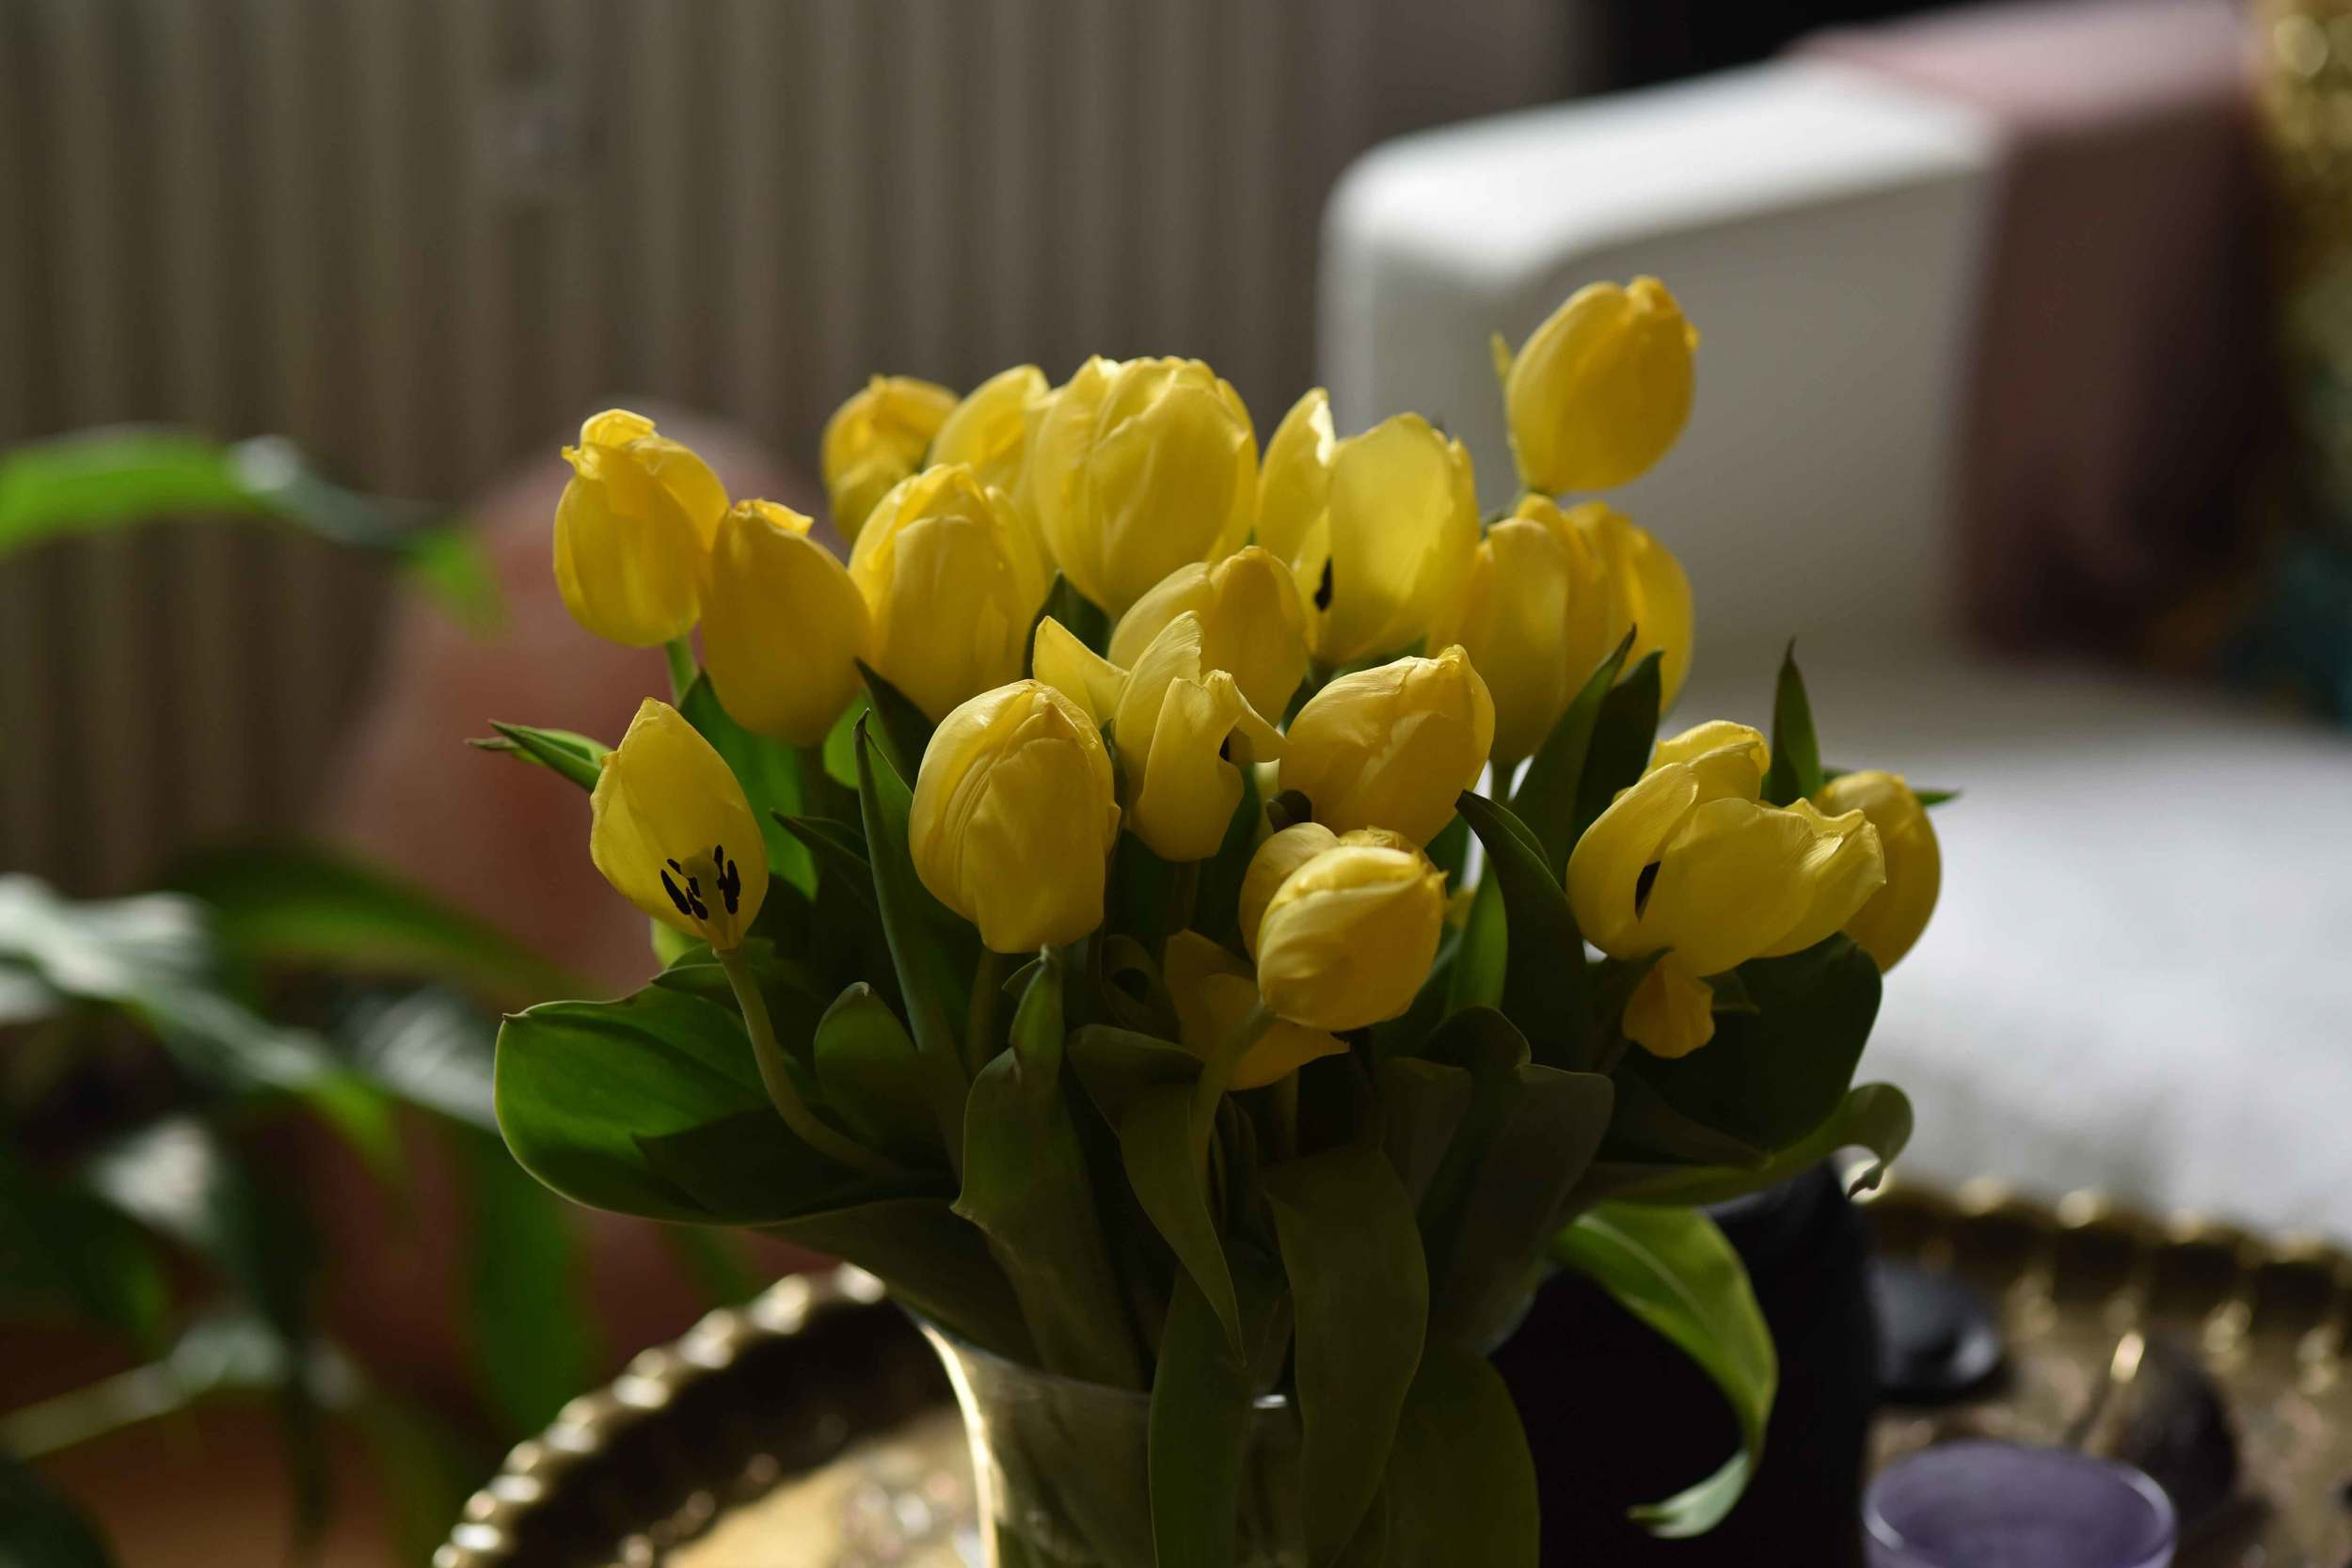 Waking up to yellow tulips! Image©sourcingstyle.com, Photo: Nicola Nolting.